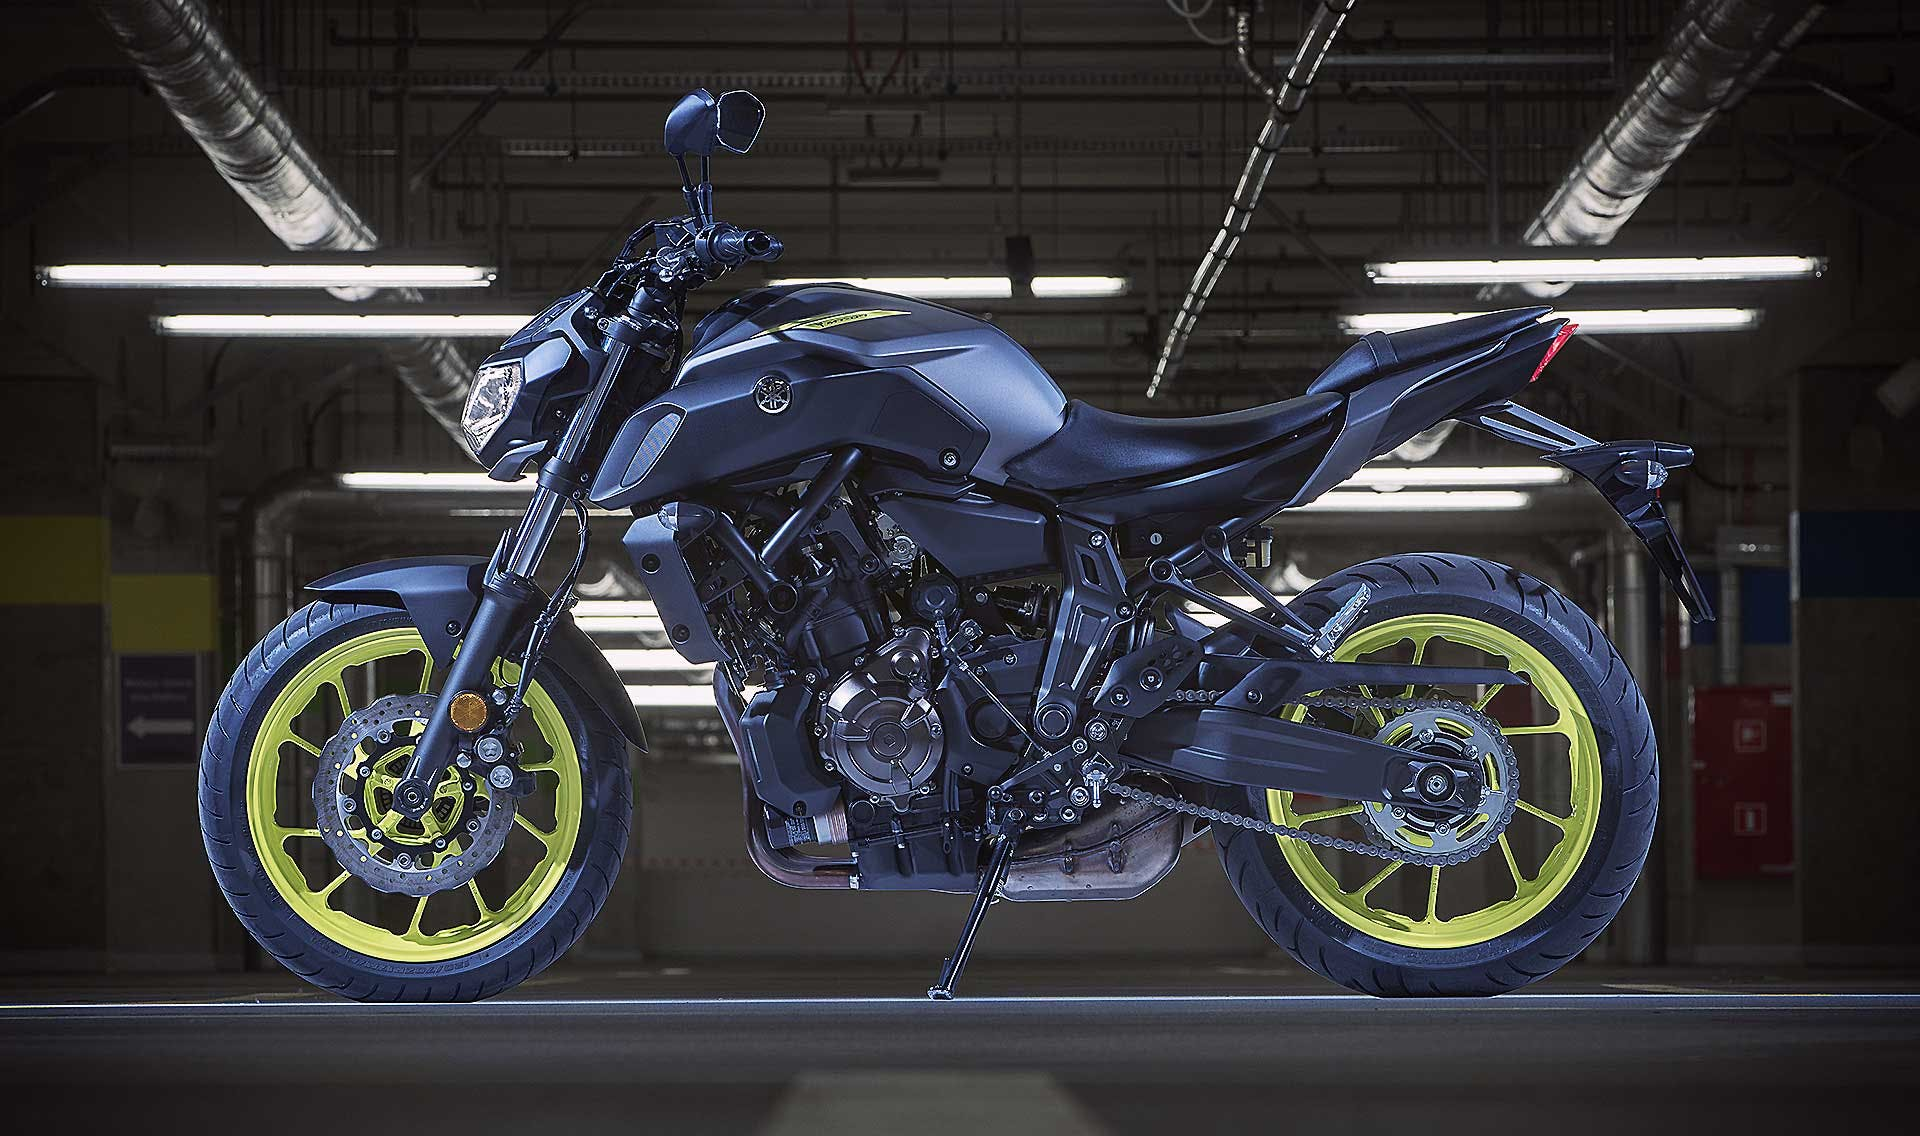 Yamaha MT-07 laterale indoor luci